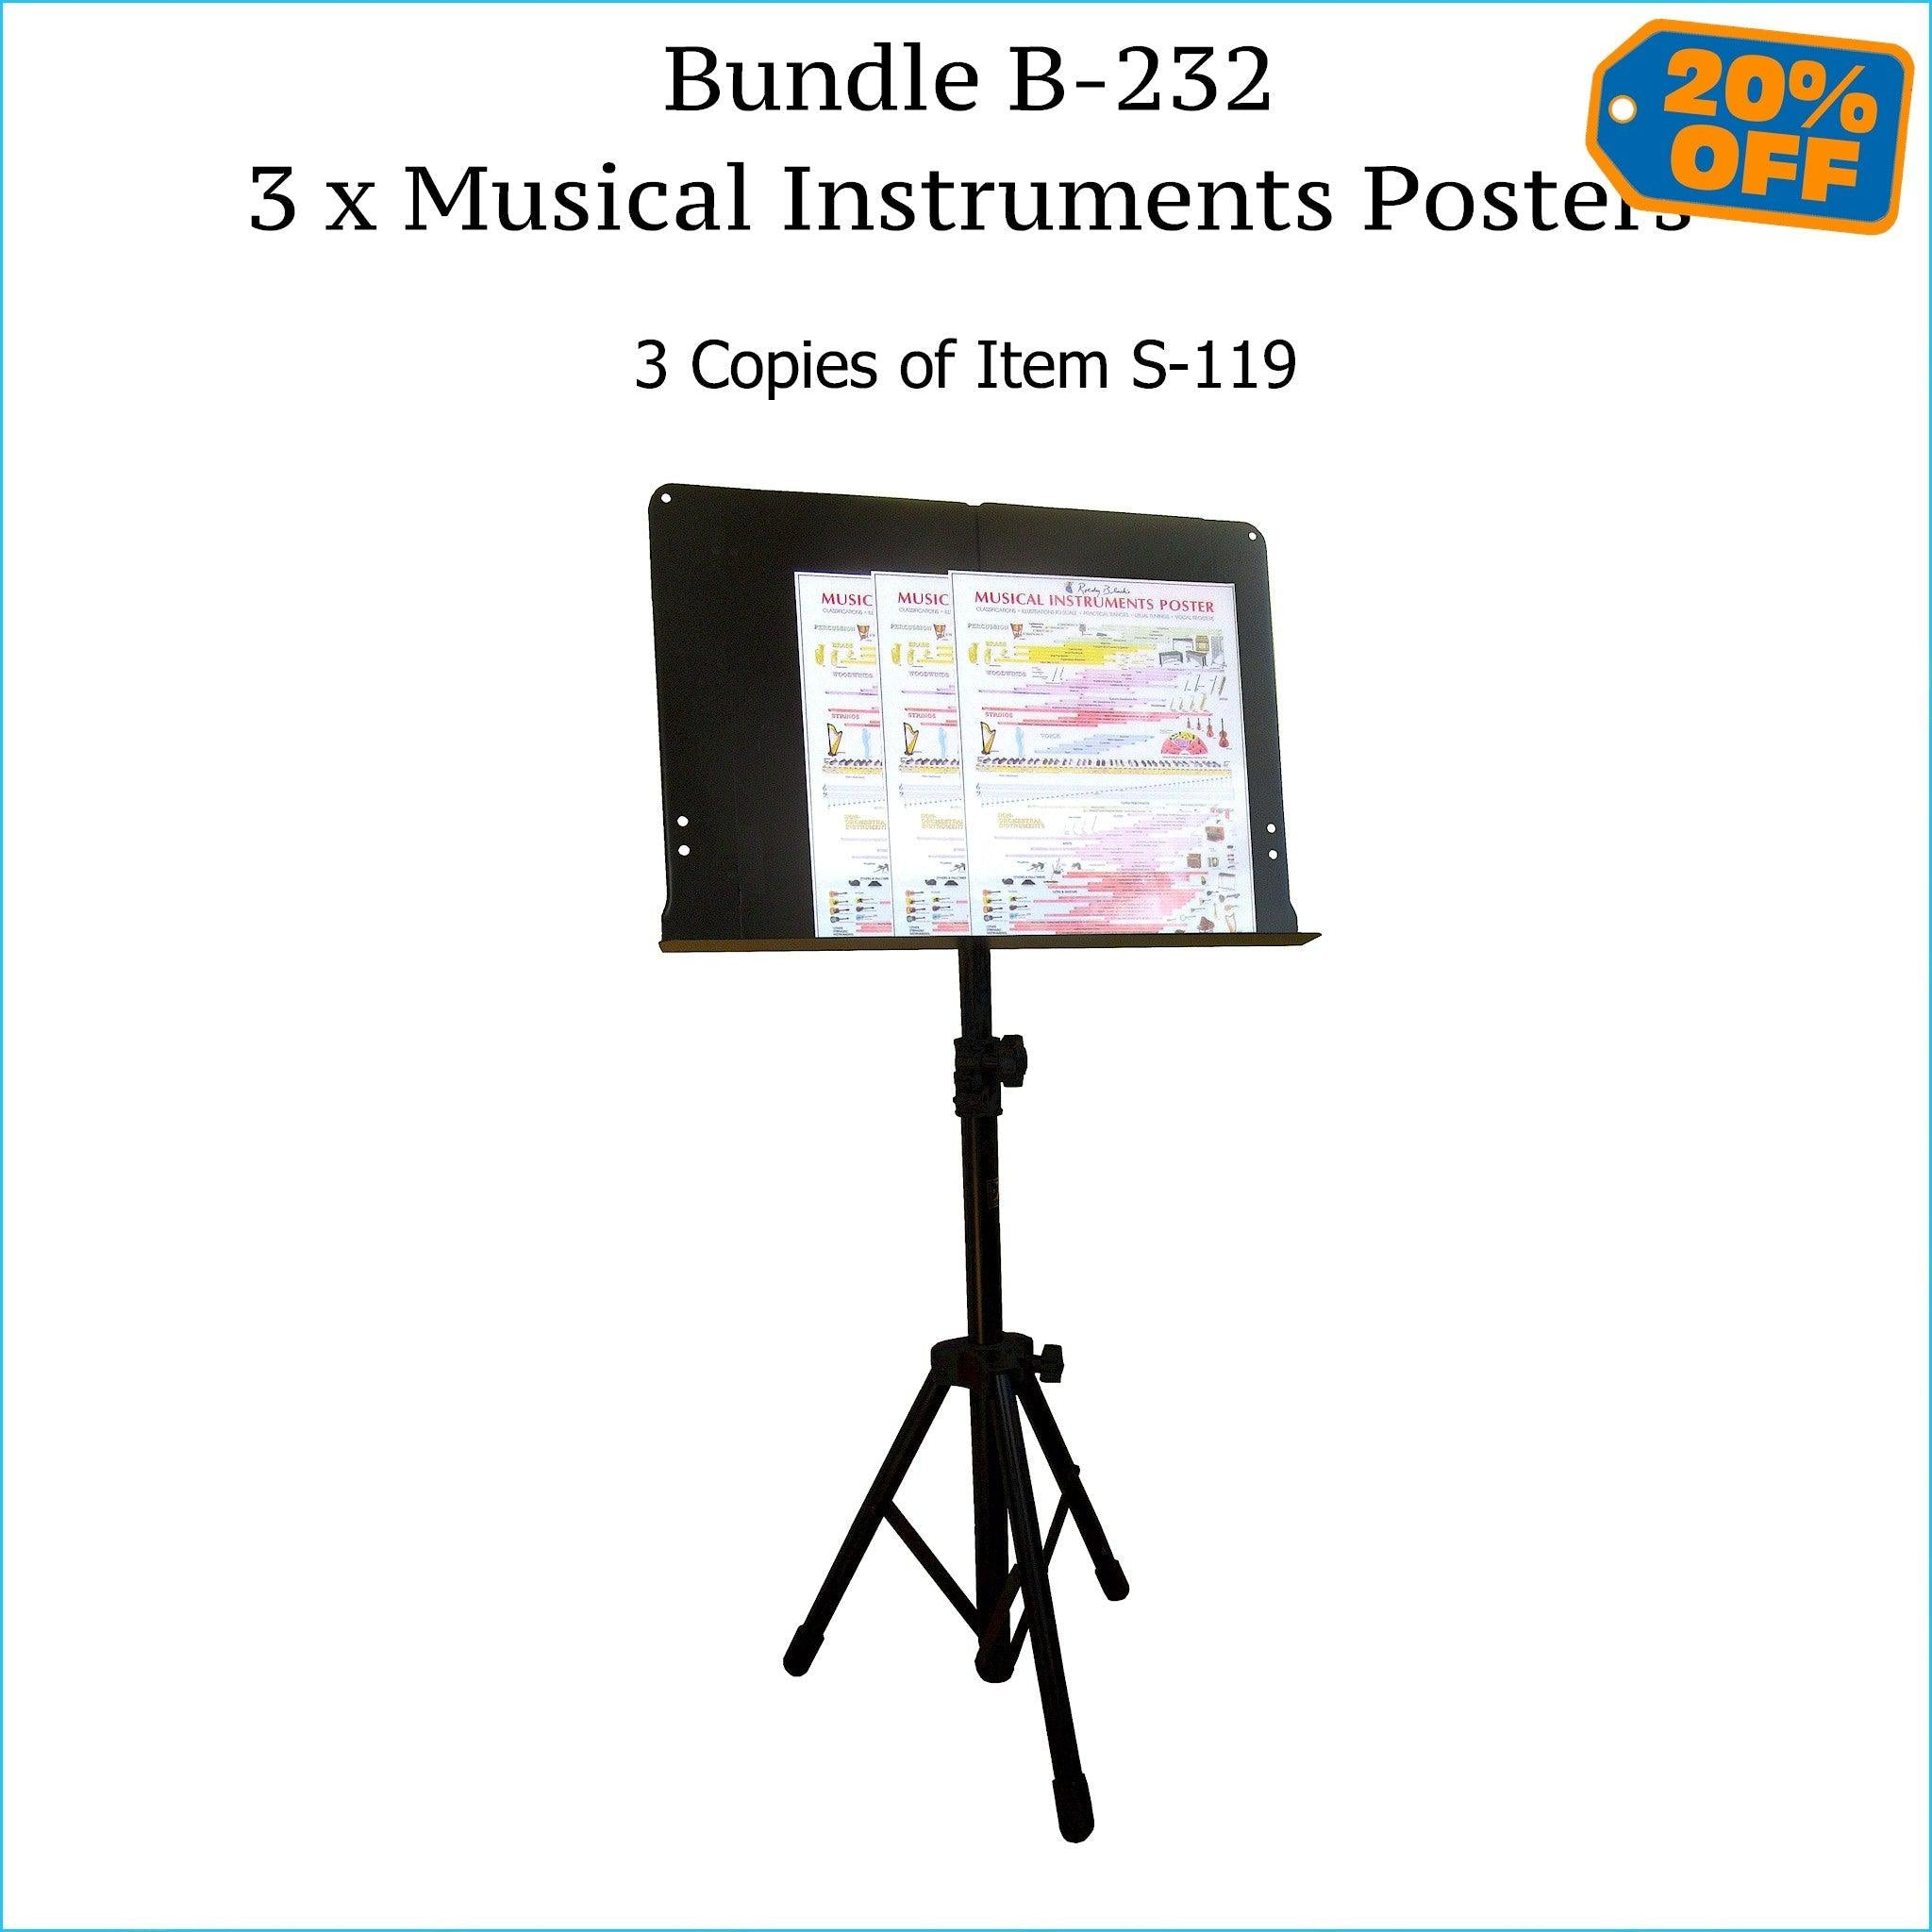 Three musical instruments posters, music stand size.